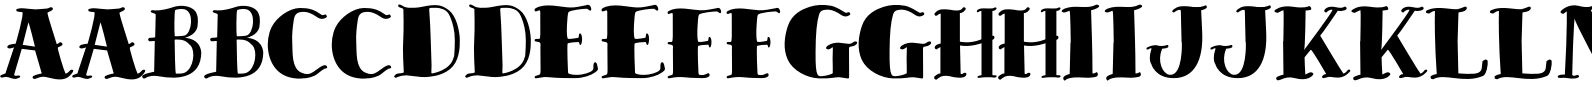 The Bay Regular Font